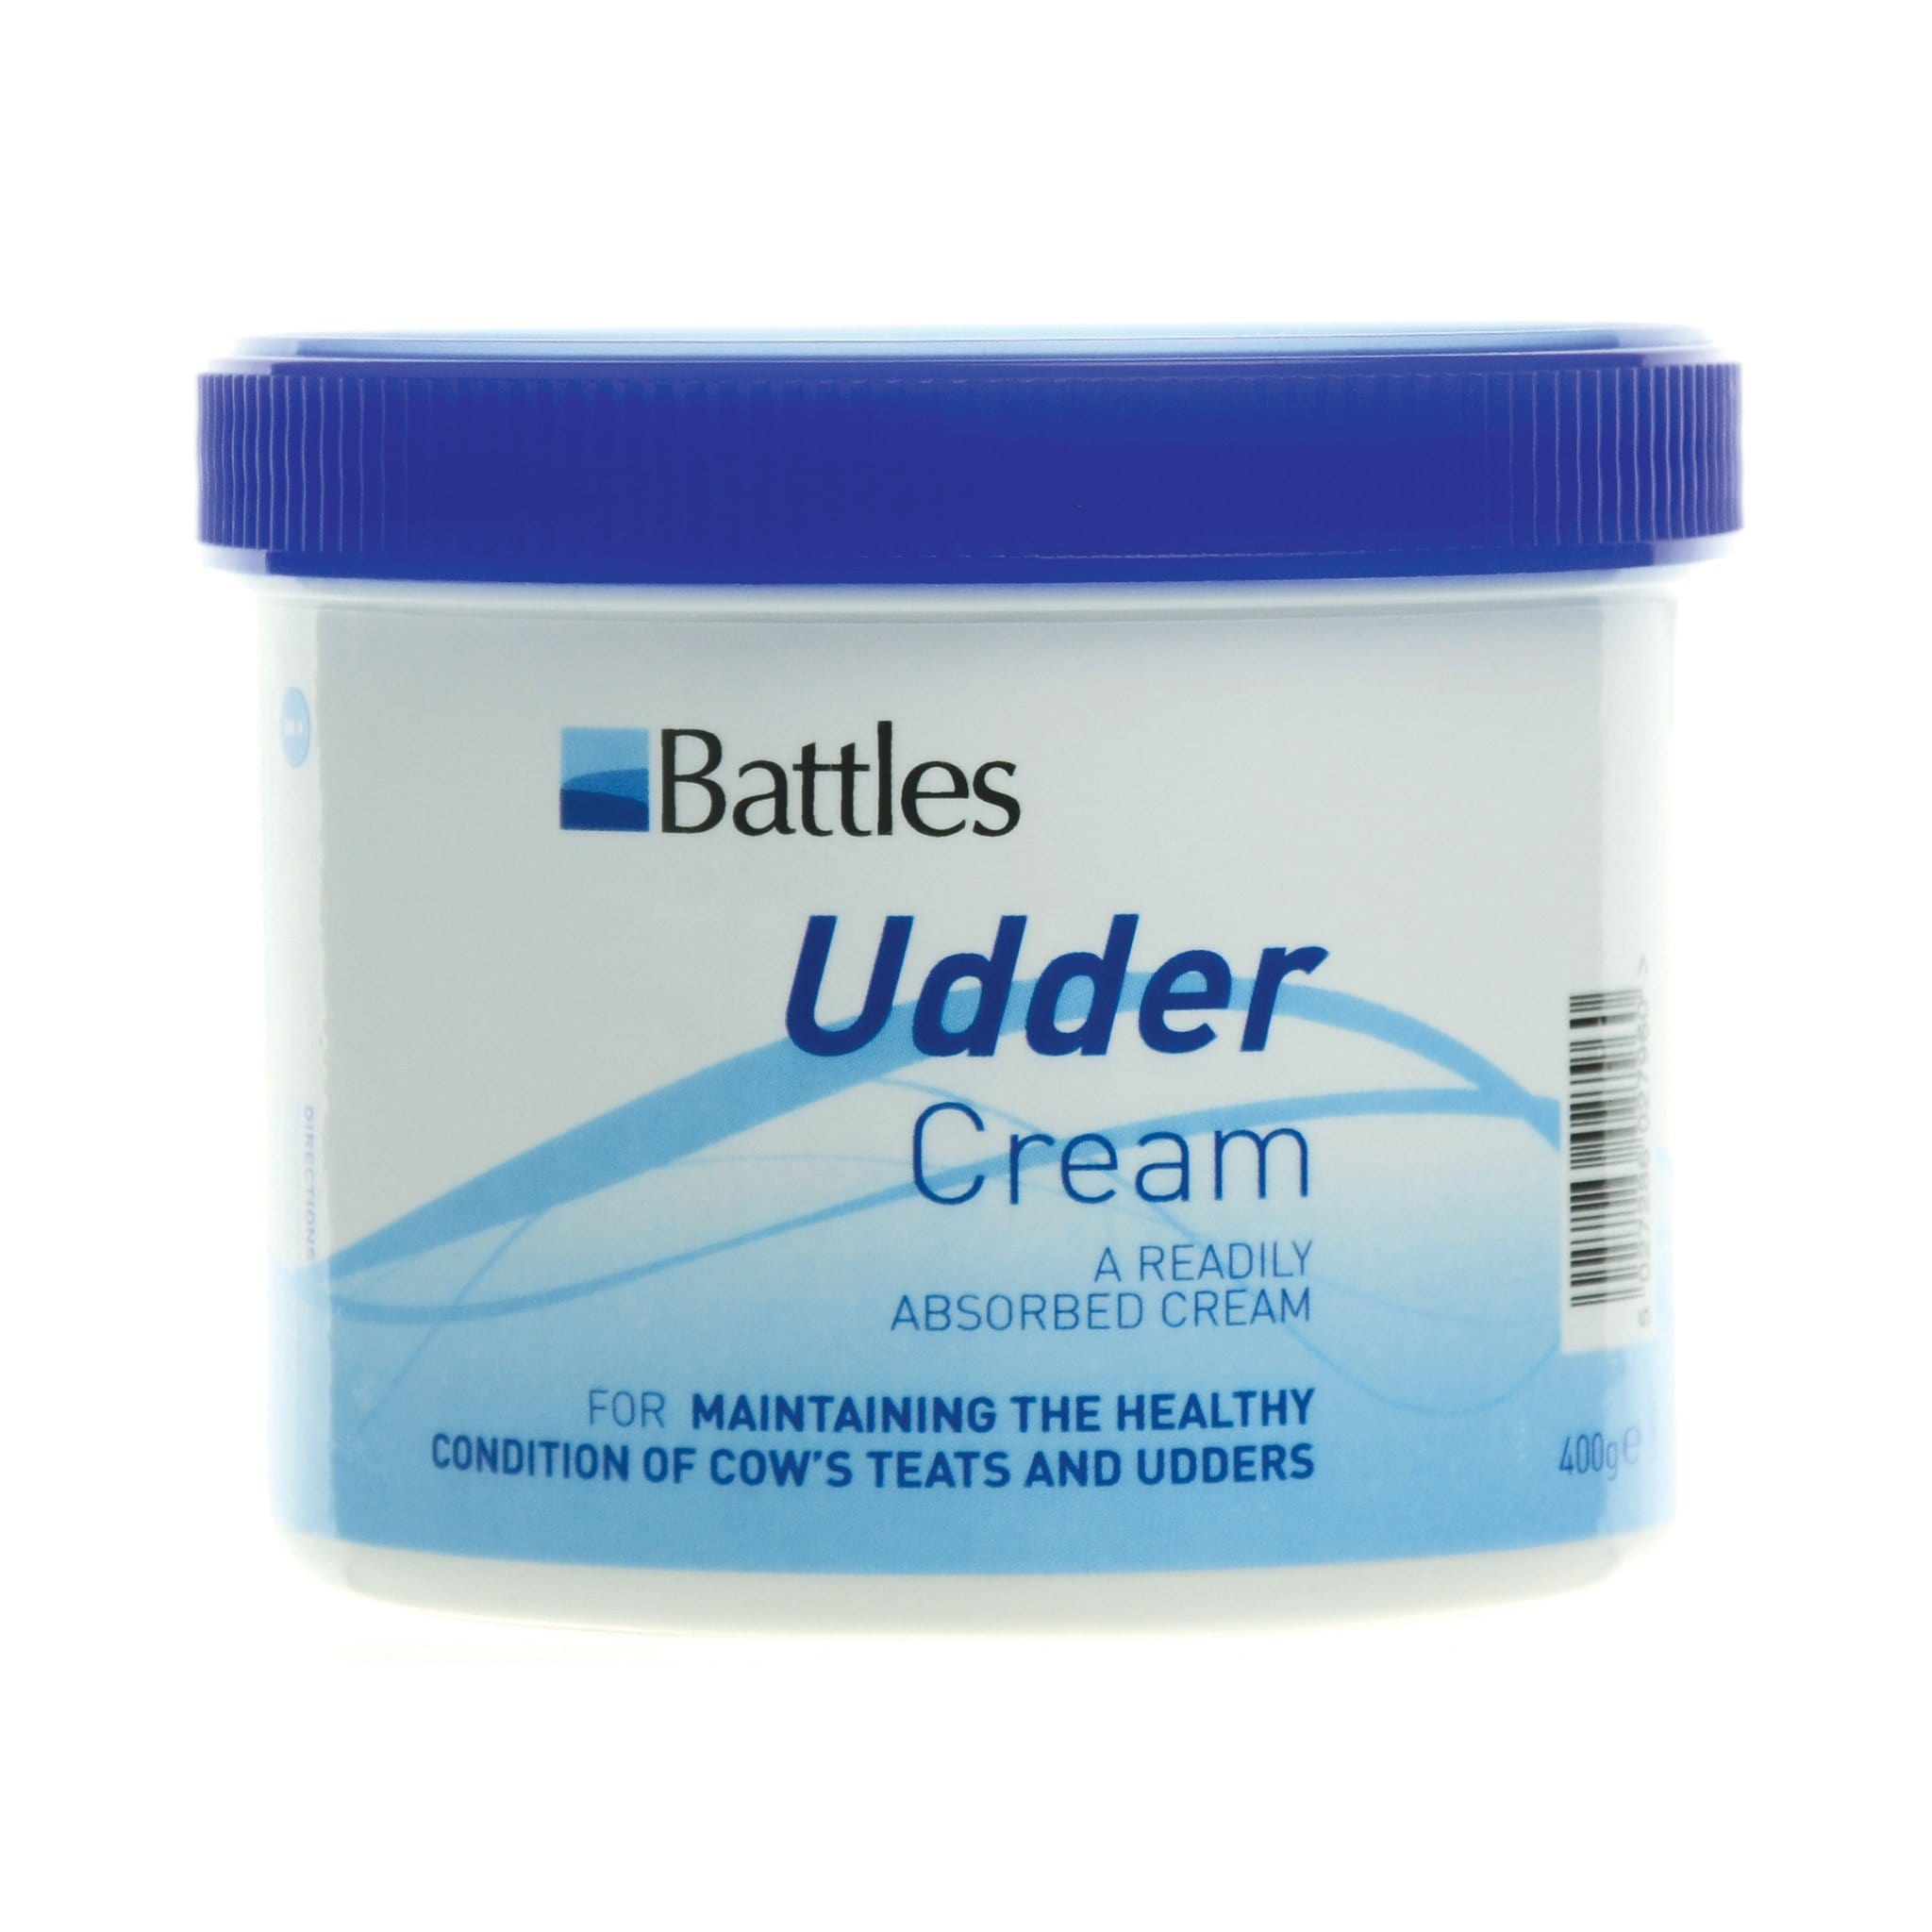 Battles Udder Cream 2796